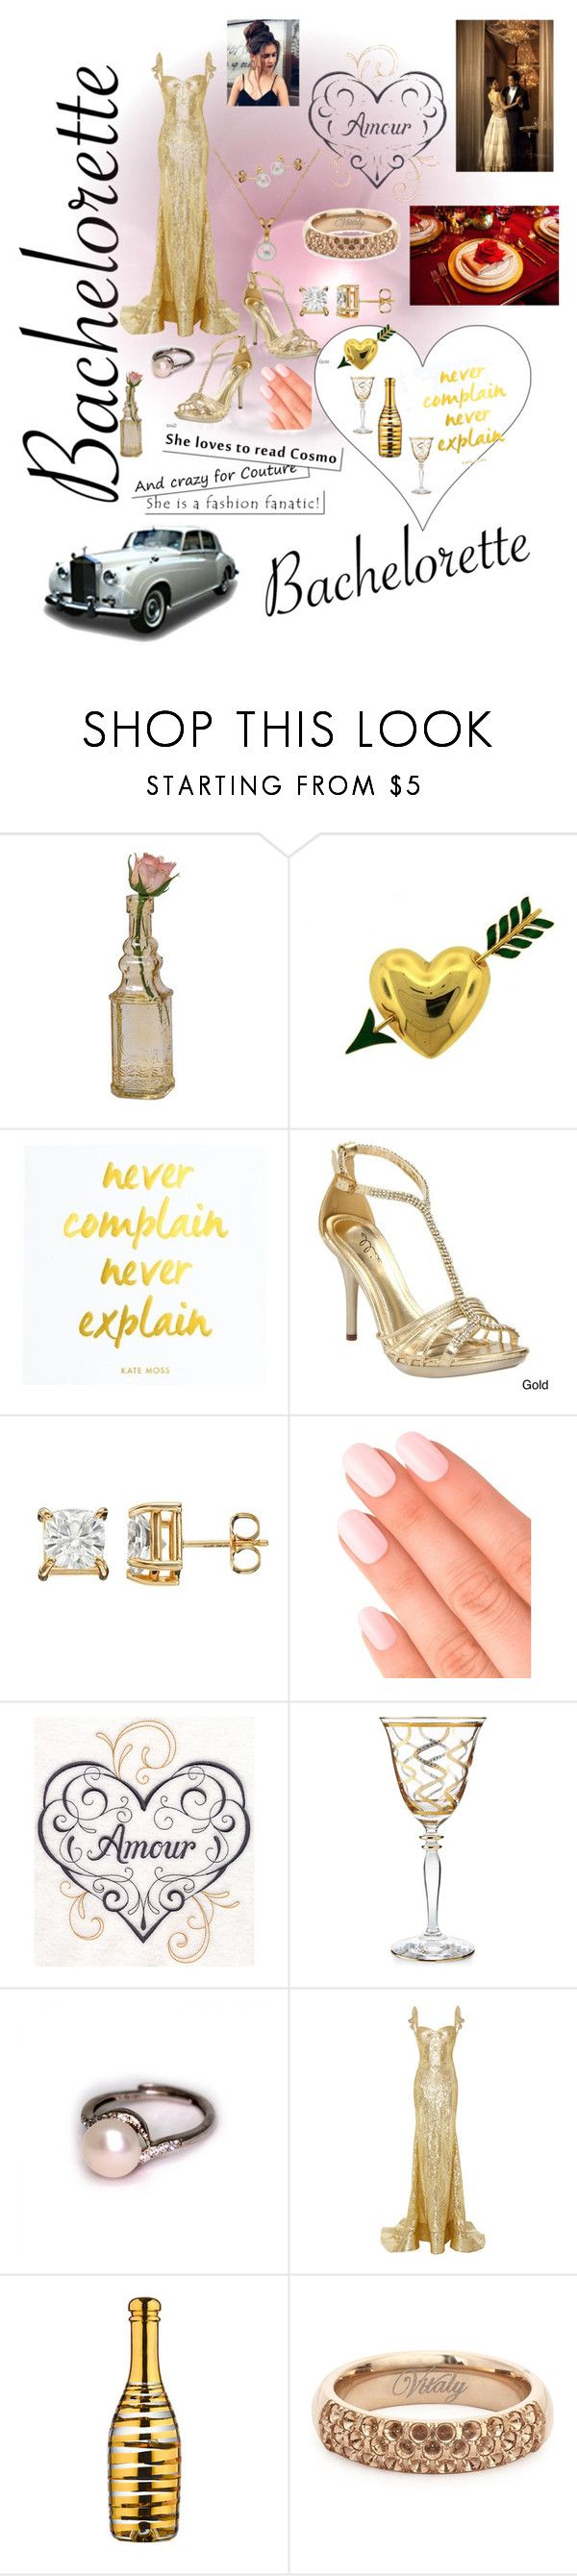 """""""Bachelorette Contest"""" by ericjen8685 ❤ liked on Polyvore featuring Cultural Intrigue, Van Cleef & Arpels, Ellie, Elegant Touch, Vietri, Naeem Khan, Kosta Boda and Vitaly"""